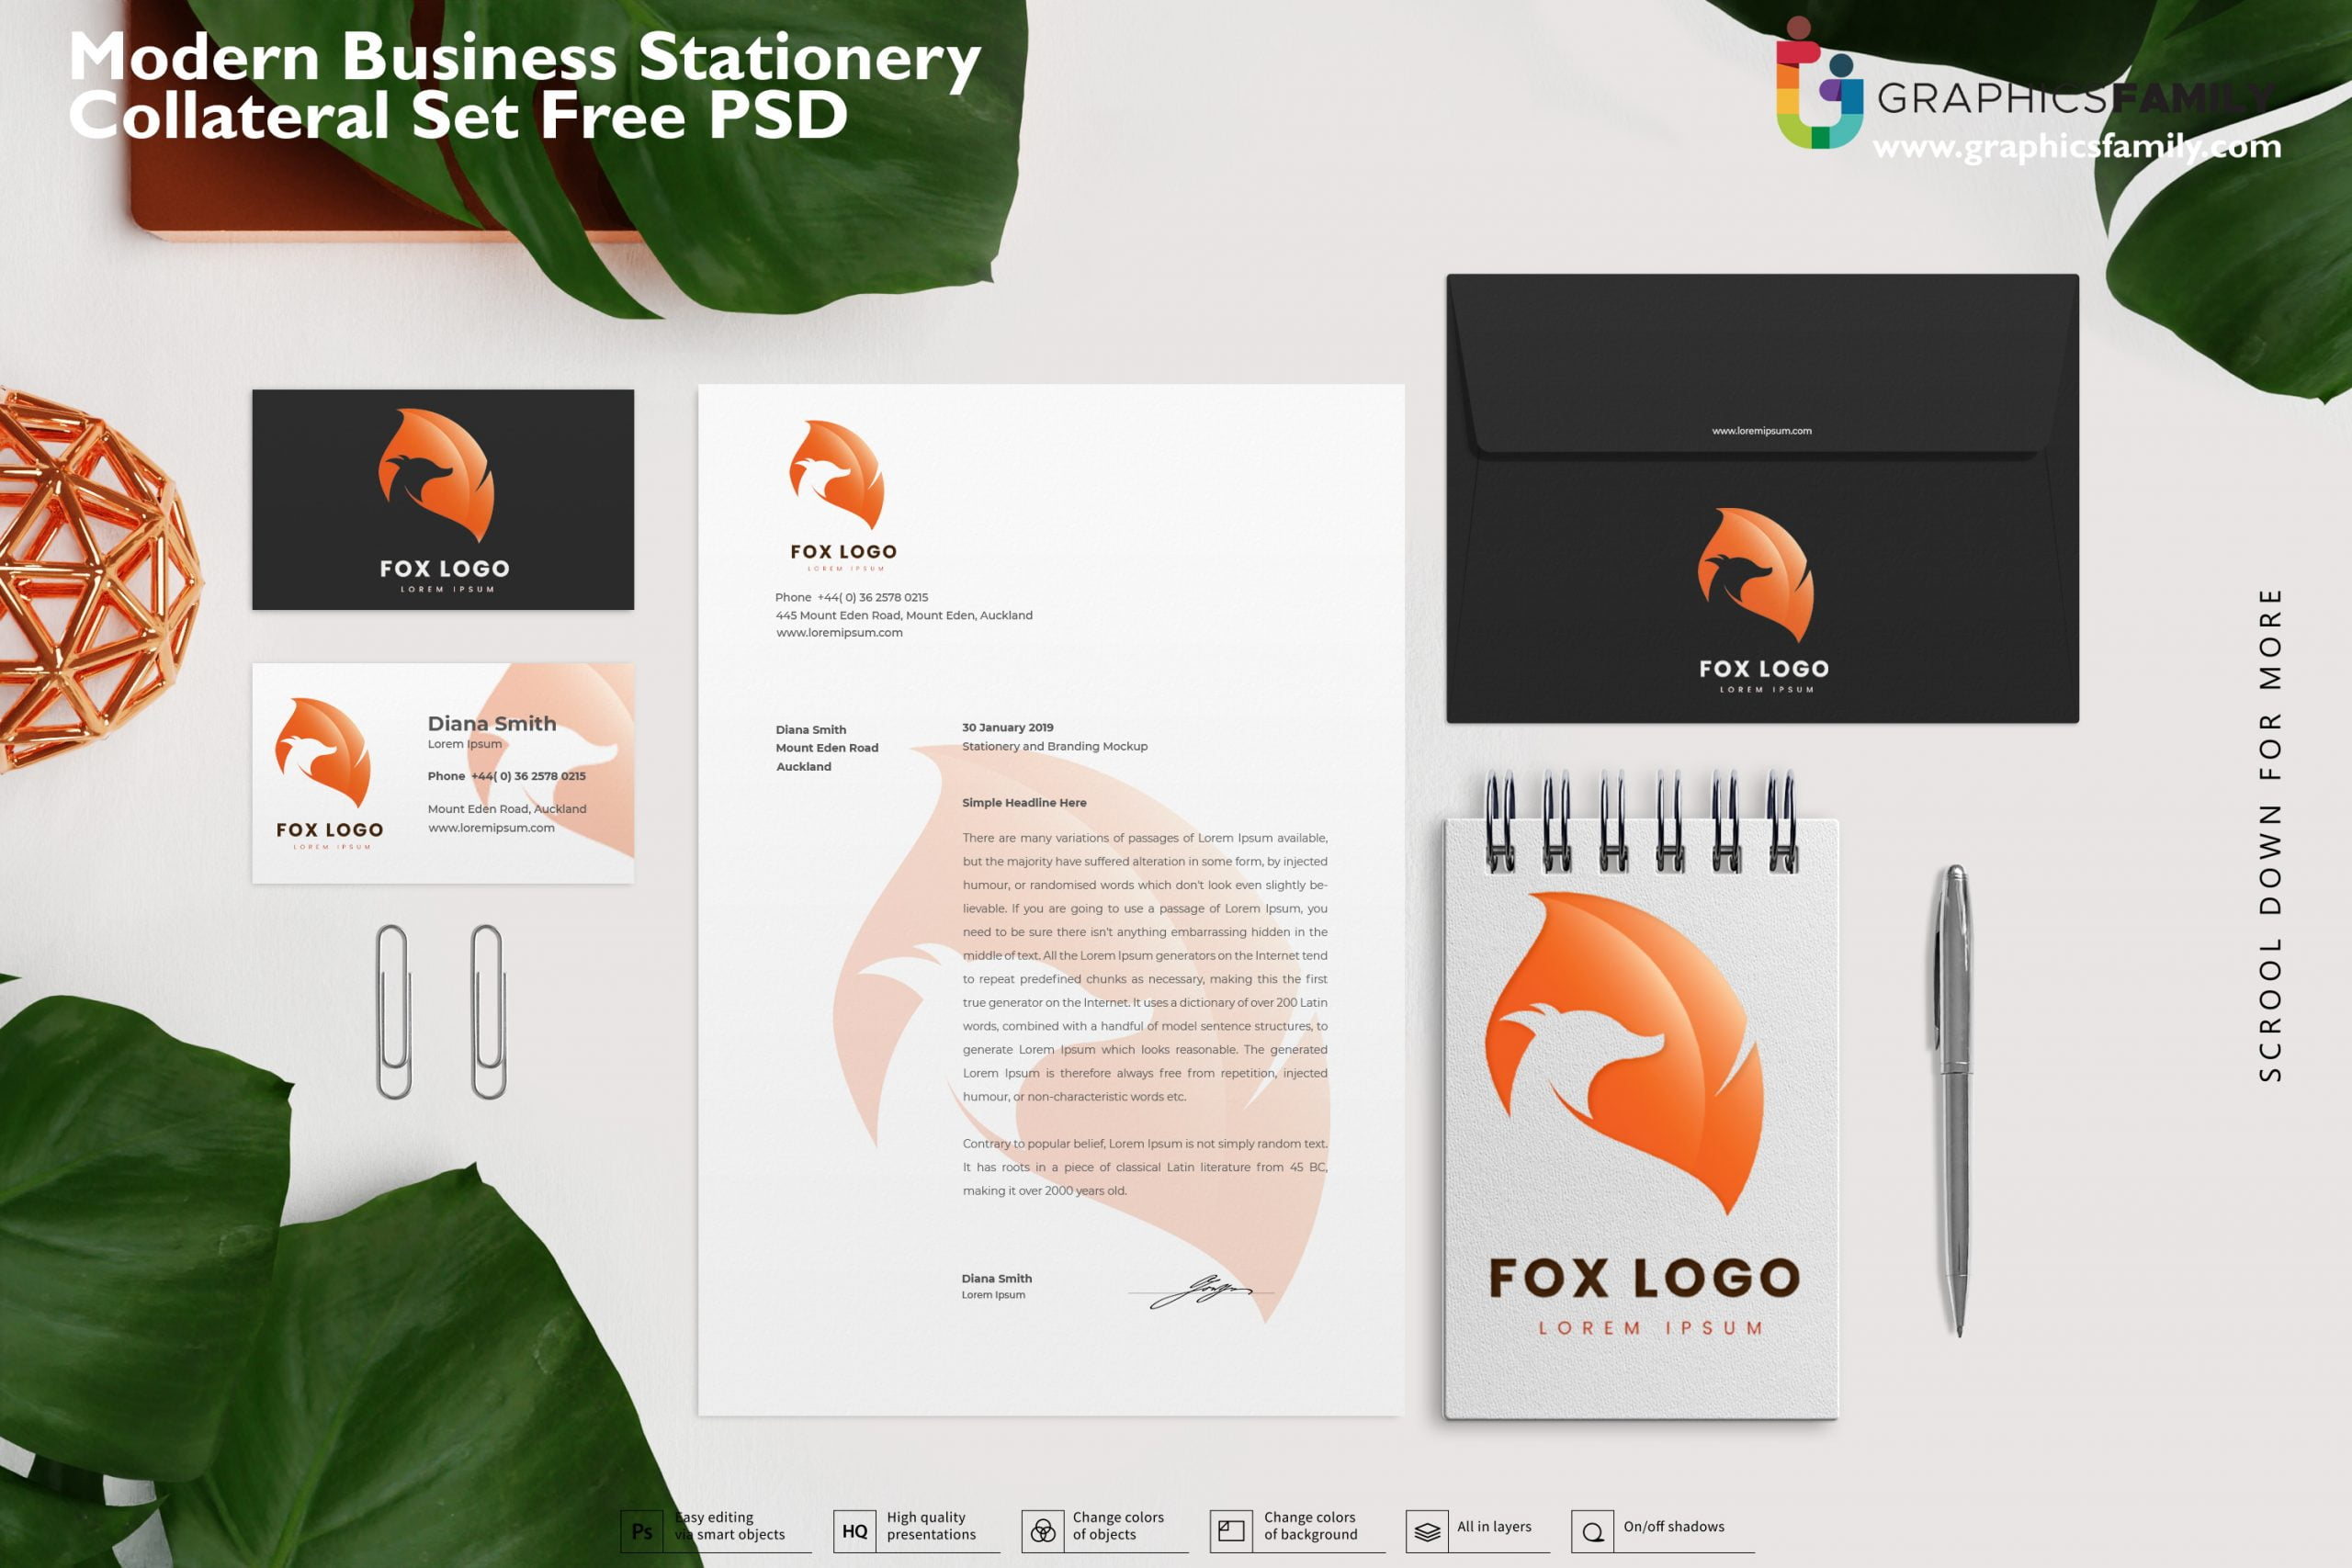 Modern business stationery collateral set Free PSD Download